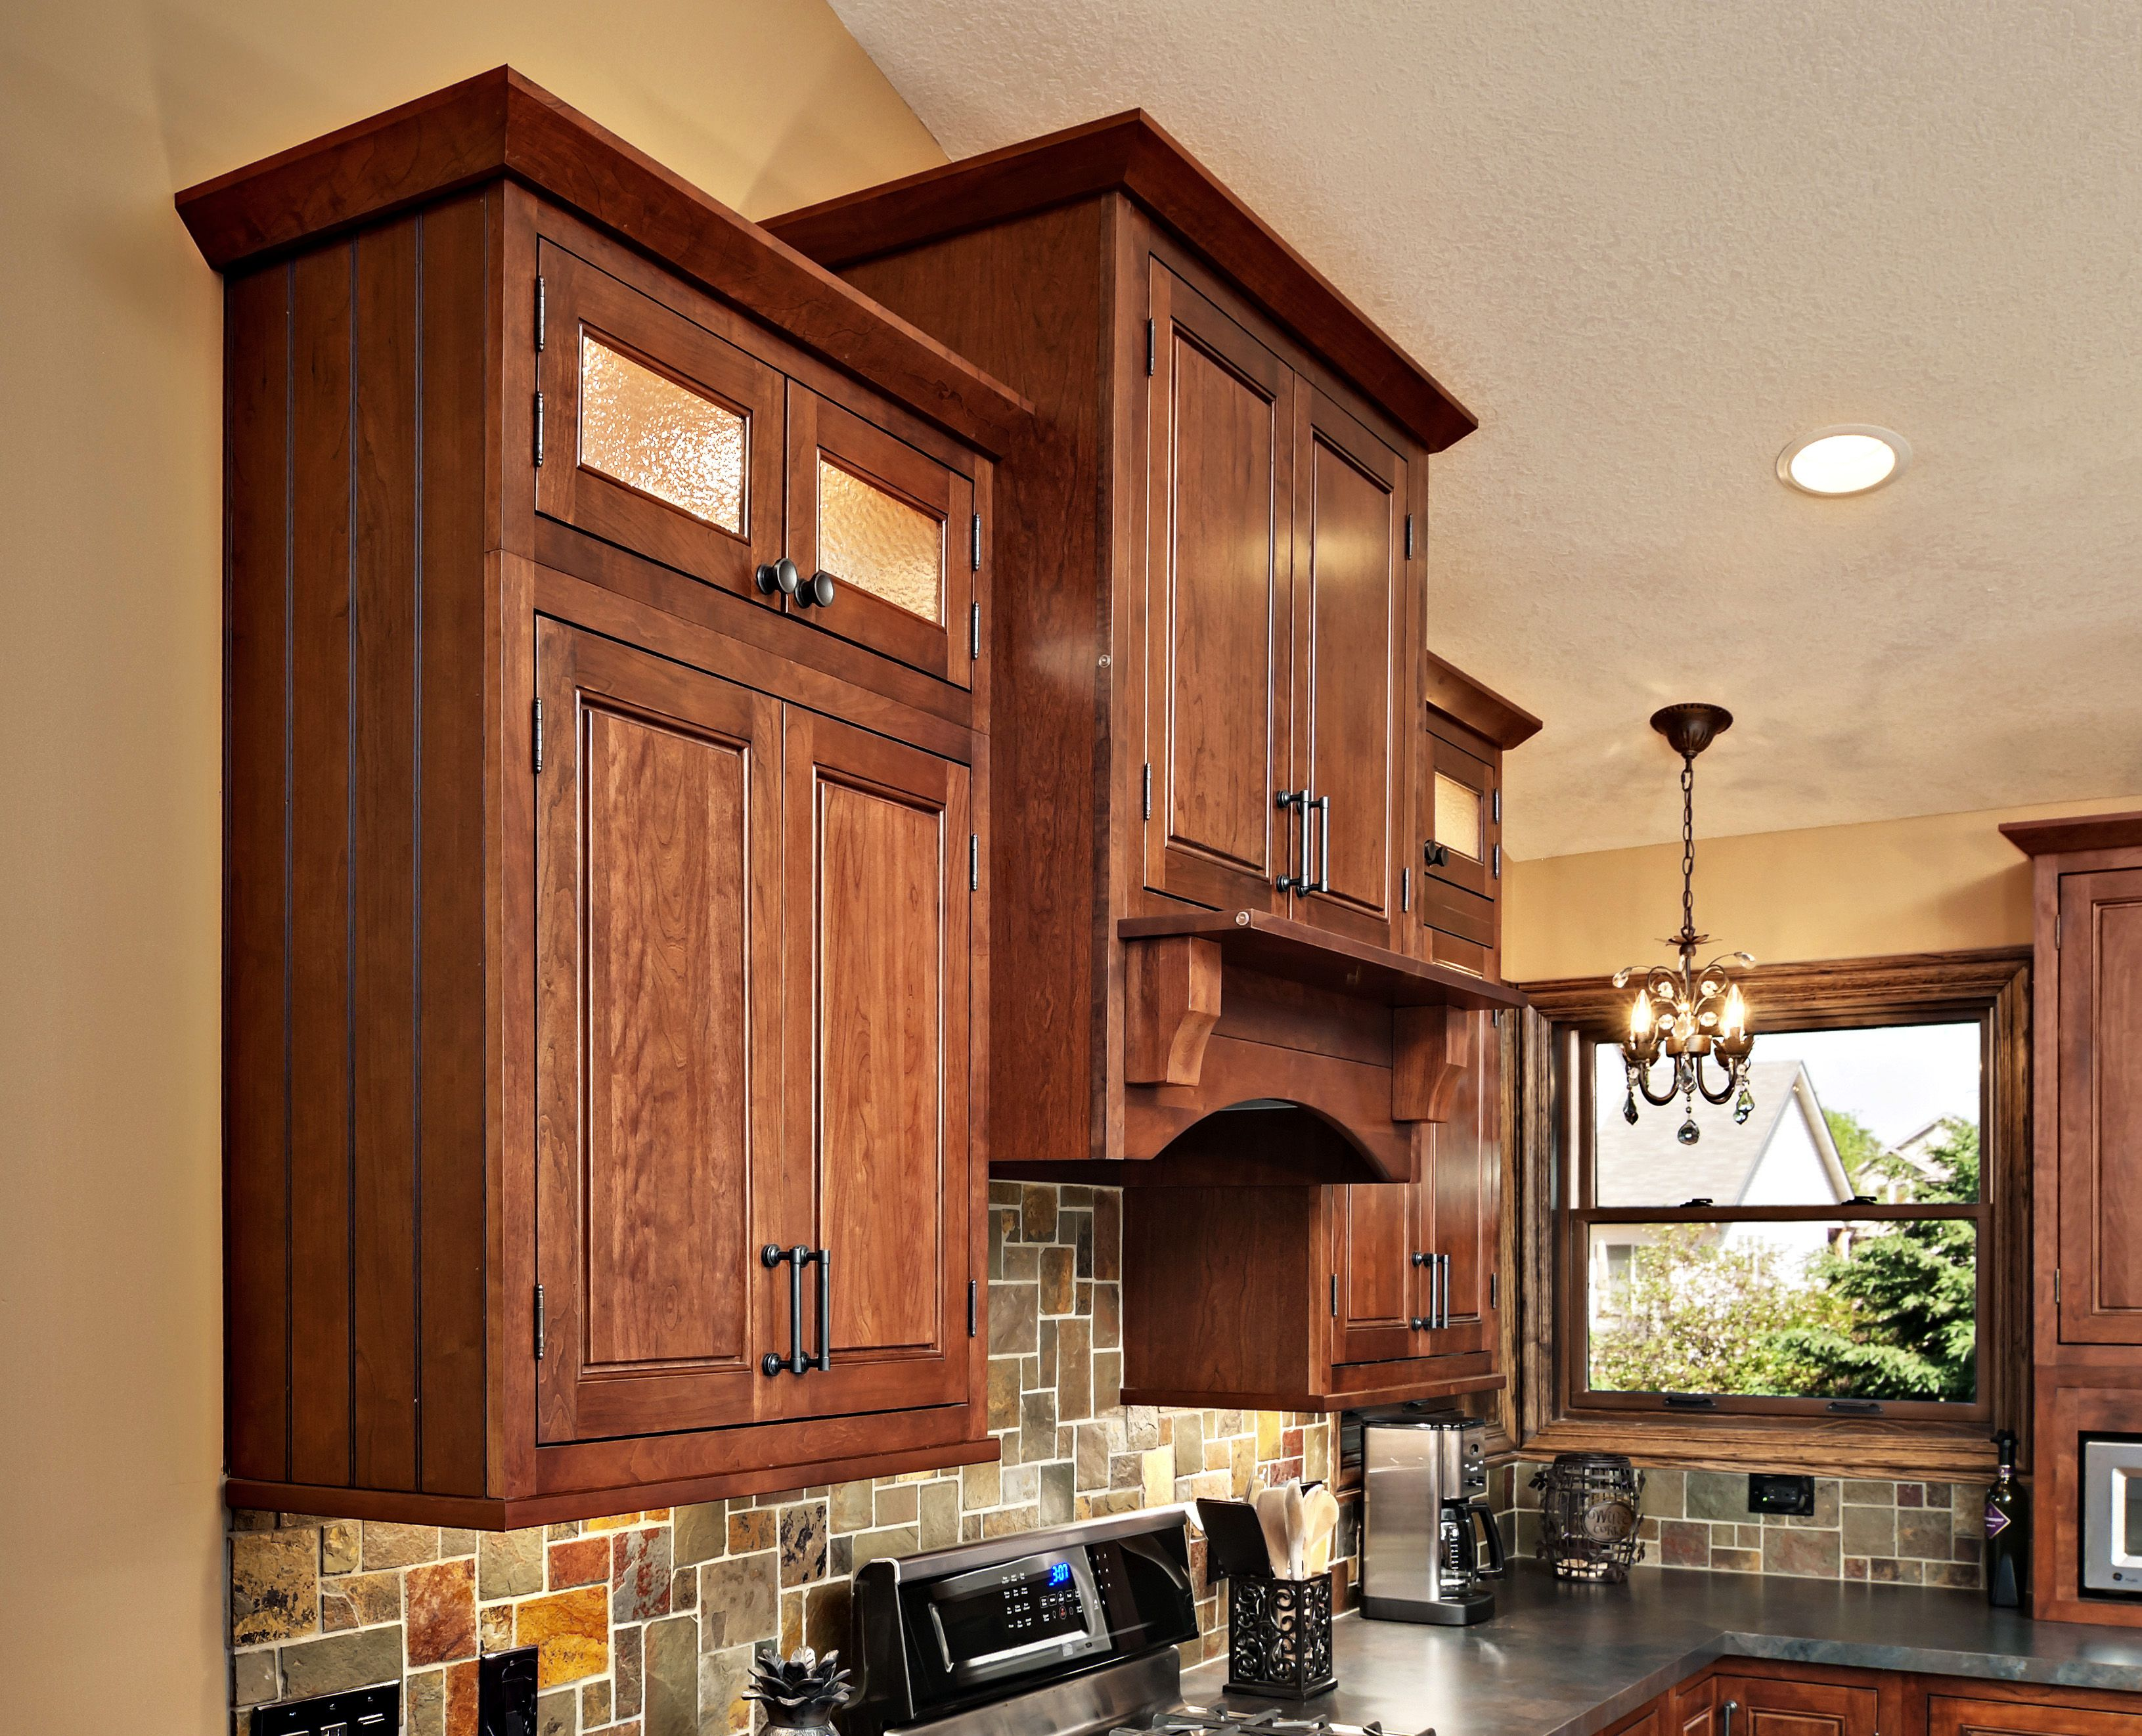 The Kitchen Cabinets Are The Fairmont Inset Style From Cliqstudios Com In The Cherry Russet Finish Crown Moldi Kitchen Design Kitchen Remodel Kitchen Cabinets